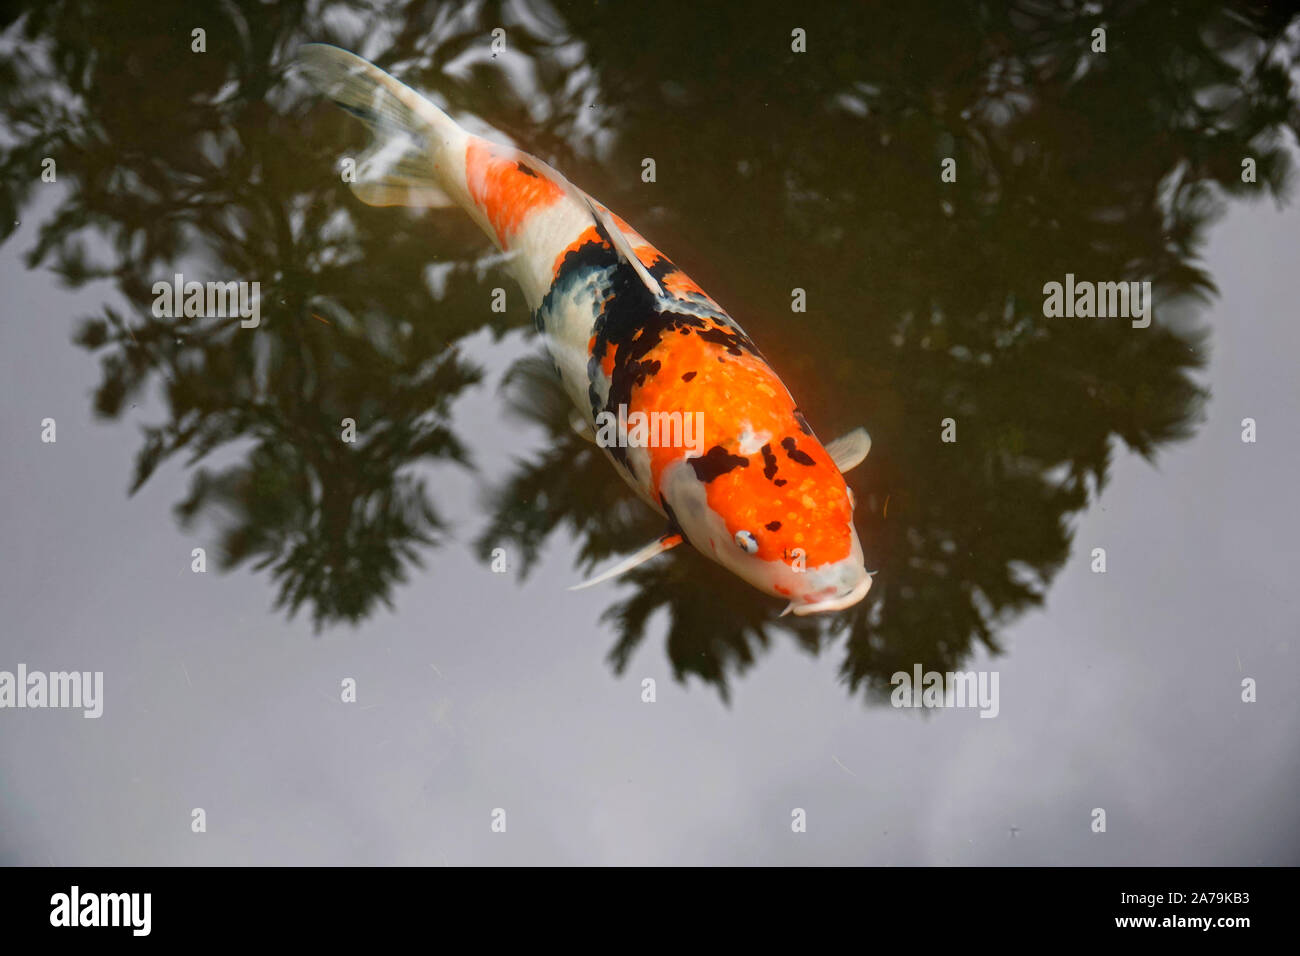 Koi fish in a fish pond  the world famous Japanese Gardens in Portland, Oregon, in Autumn. Stock Photo